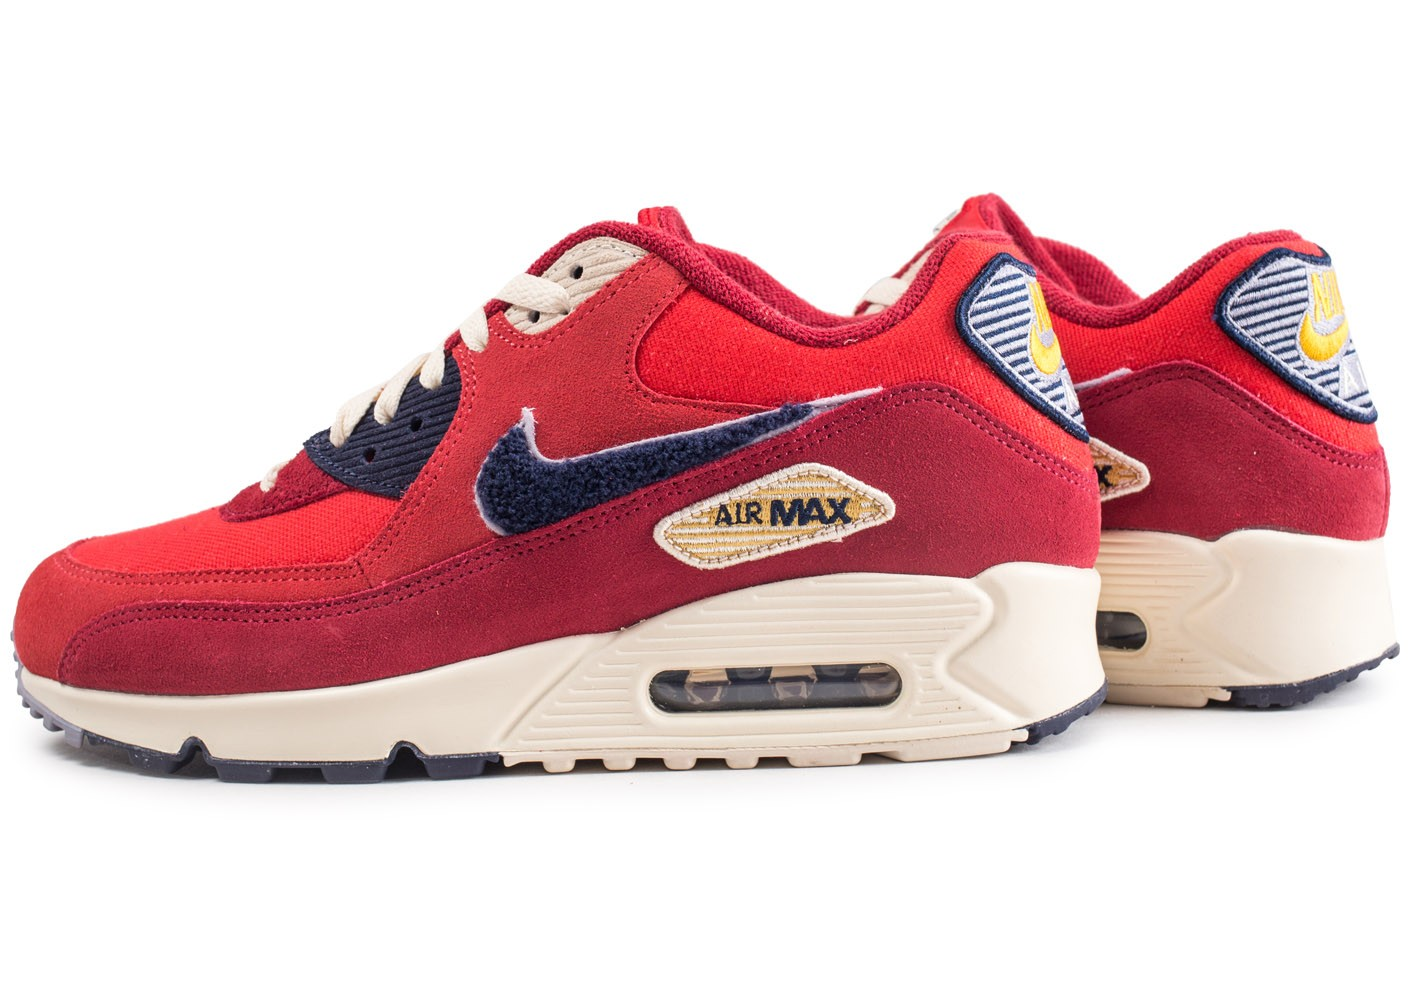 Nike Air Max 90 Premium SE rouge - Chaussures Baskets homme ...